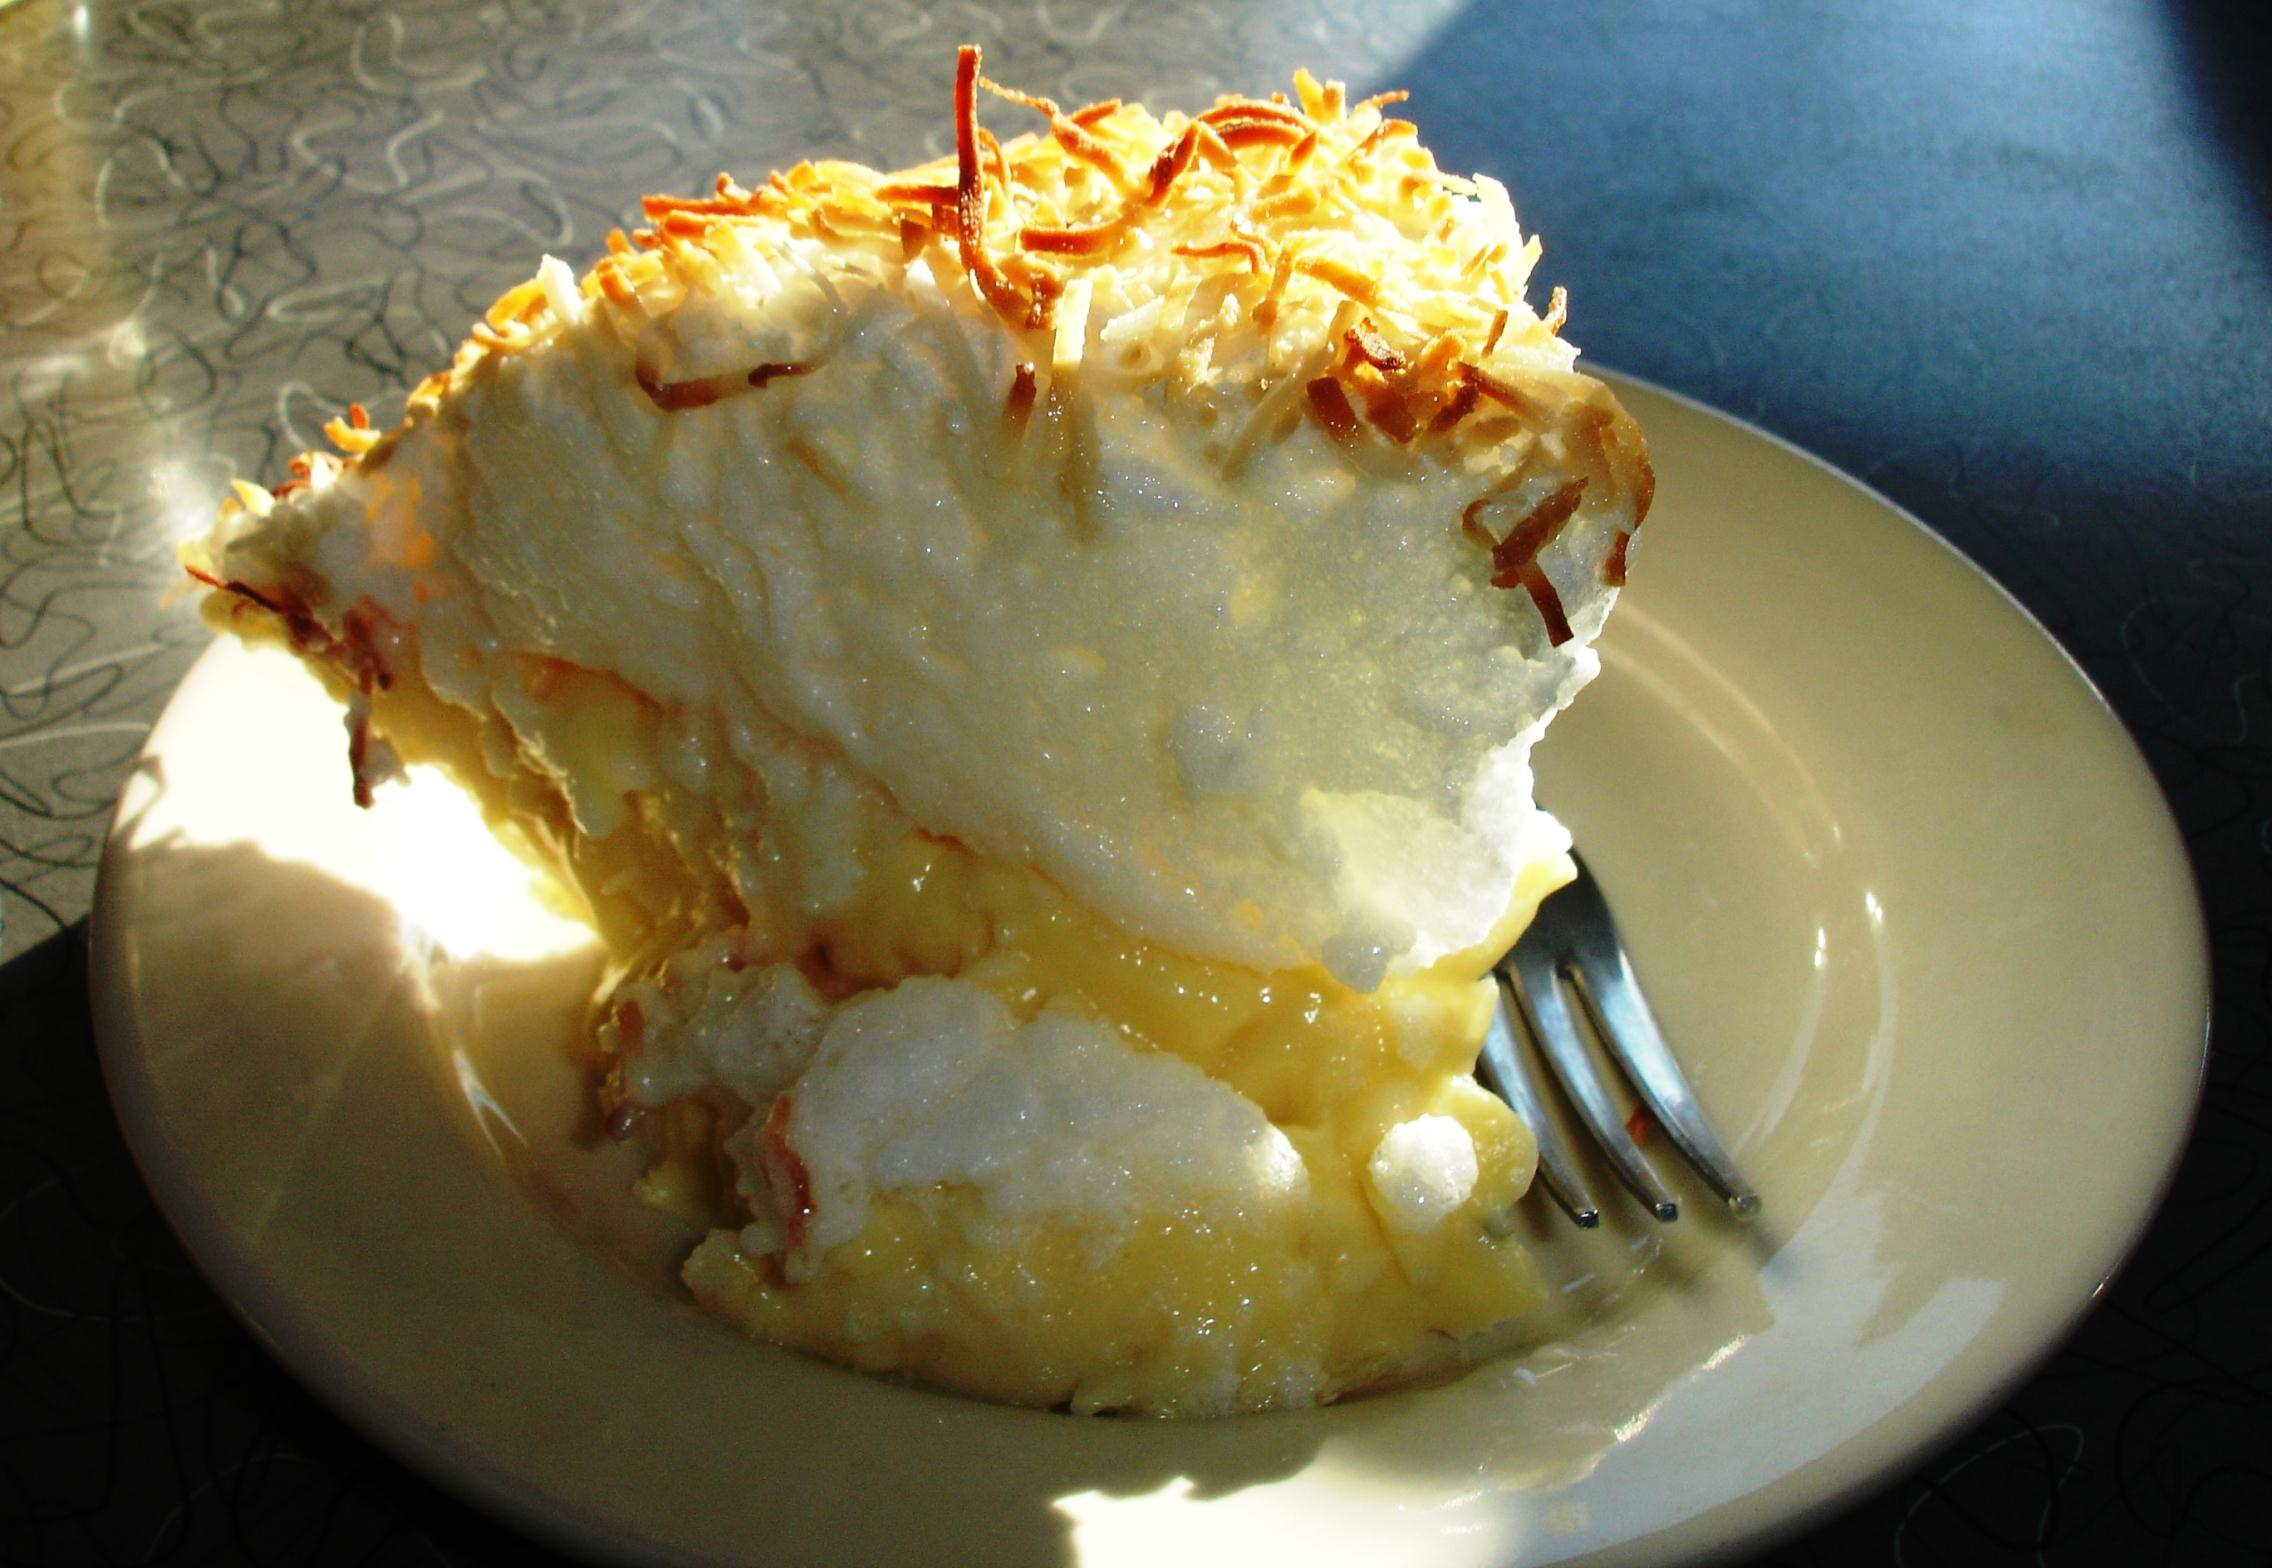 Pies, like this wedge of meringue-topped coconut cream, are made in-house.